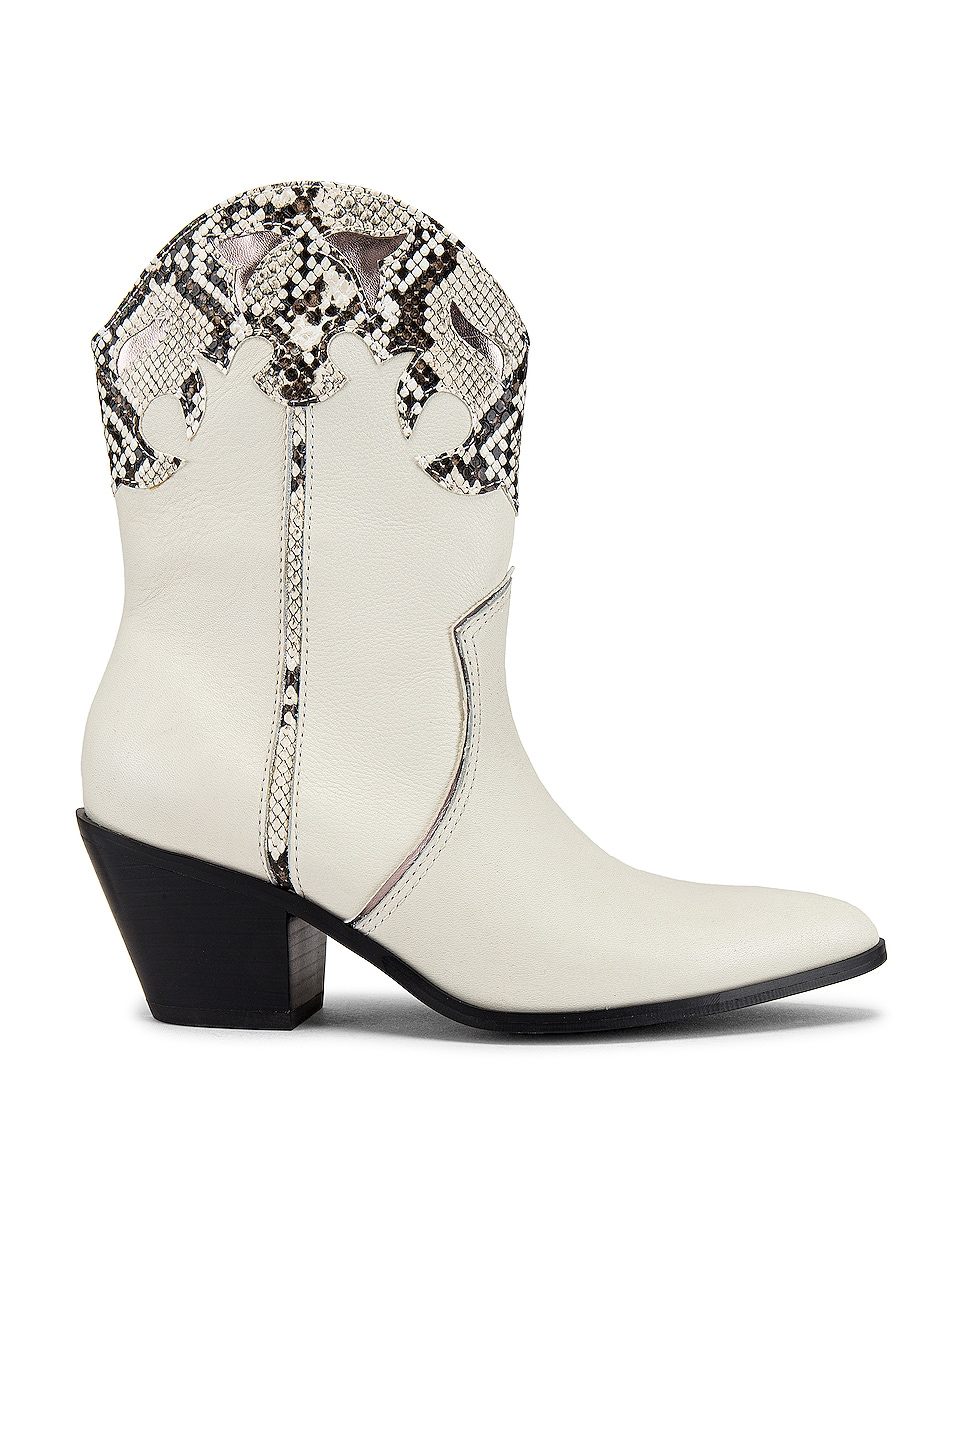 Steve Madden Howdy Boot in White Leather